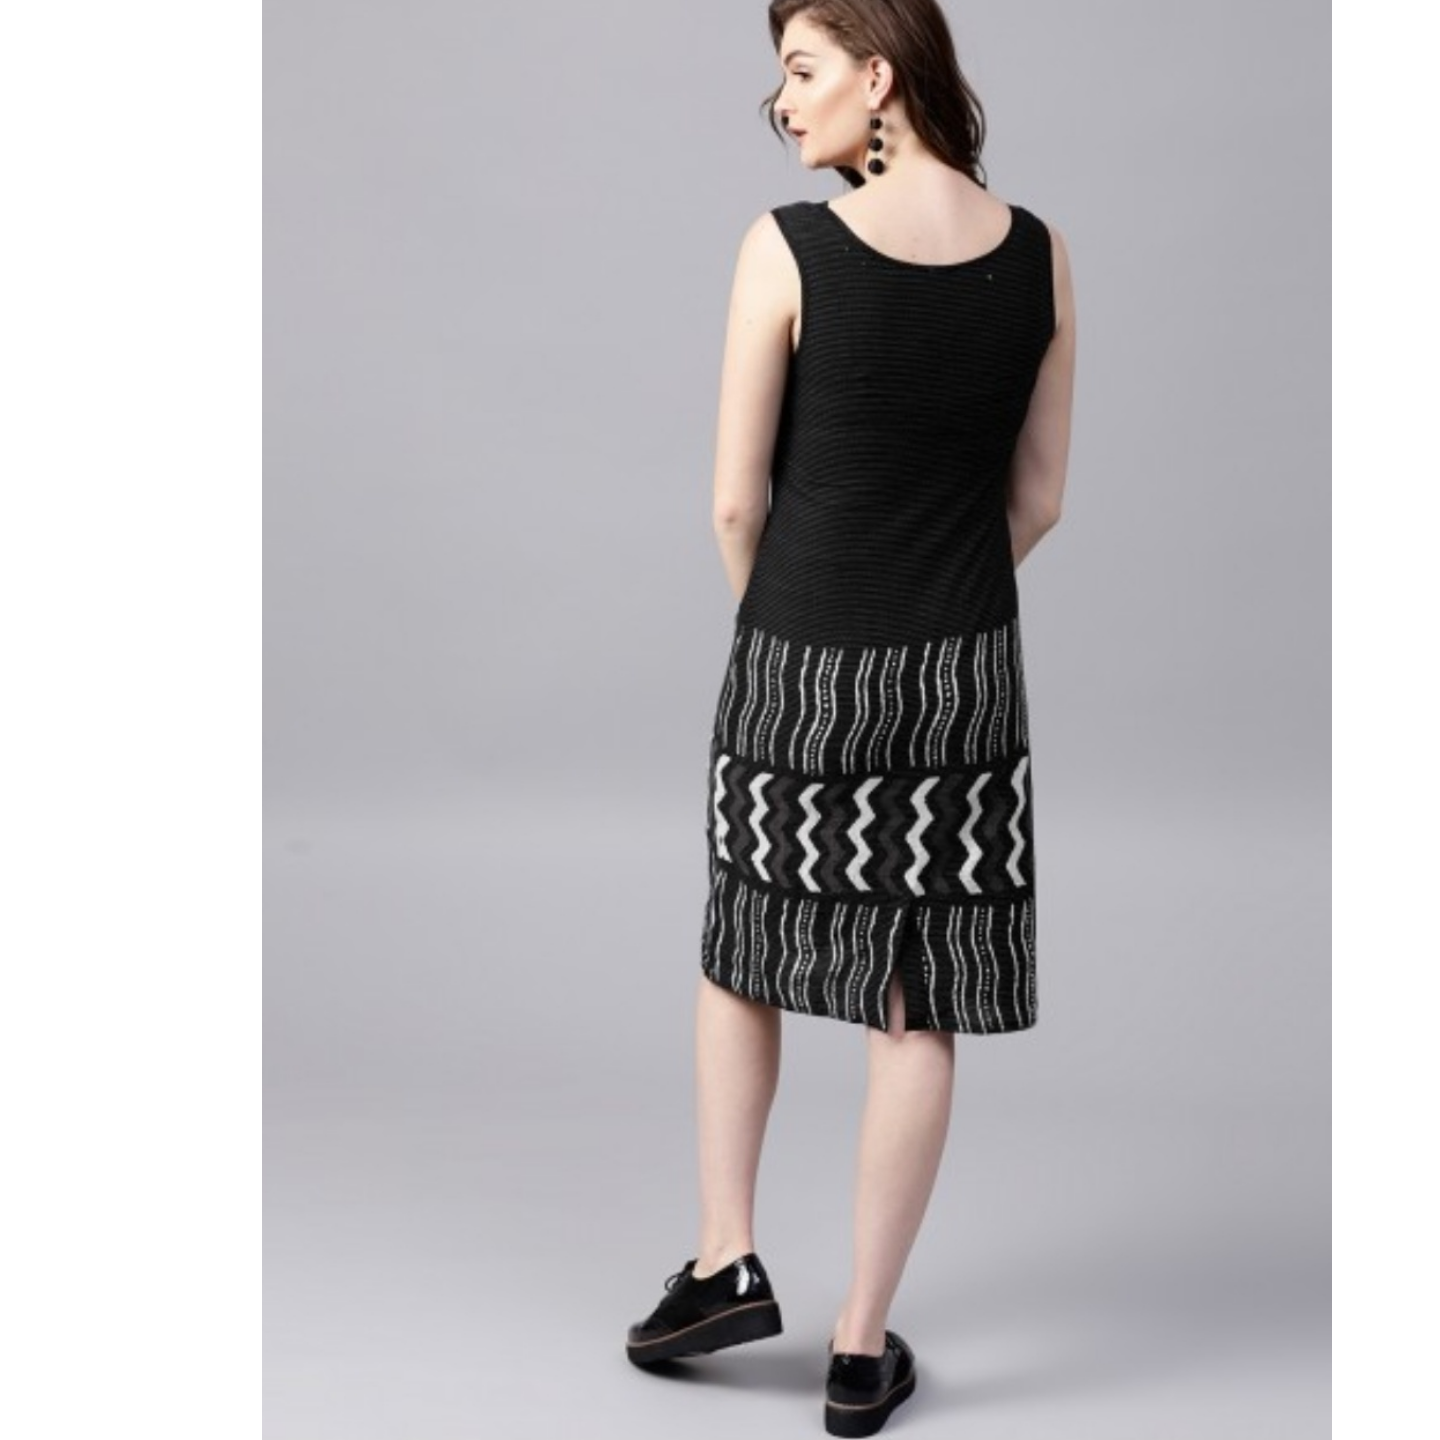 Black & White Kantha Work Sleevless Dress